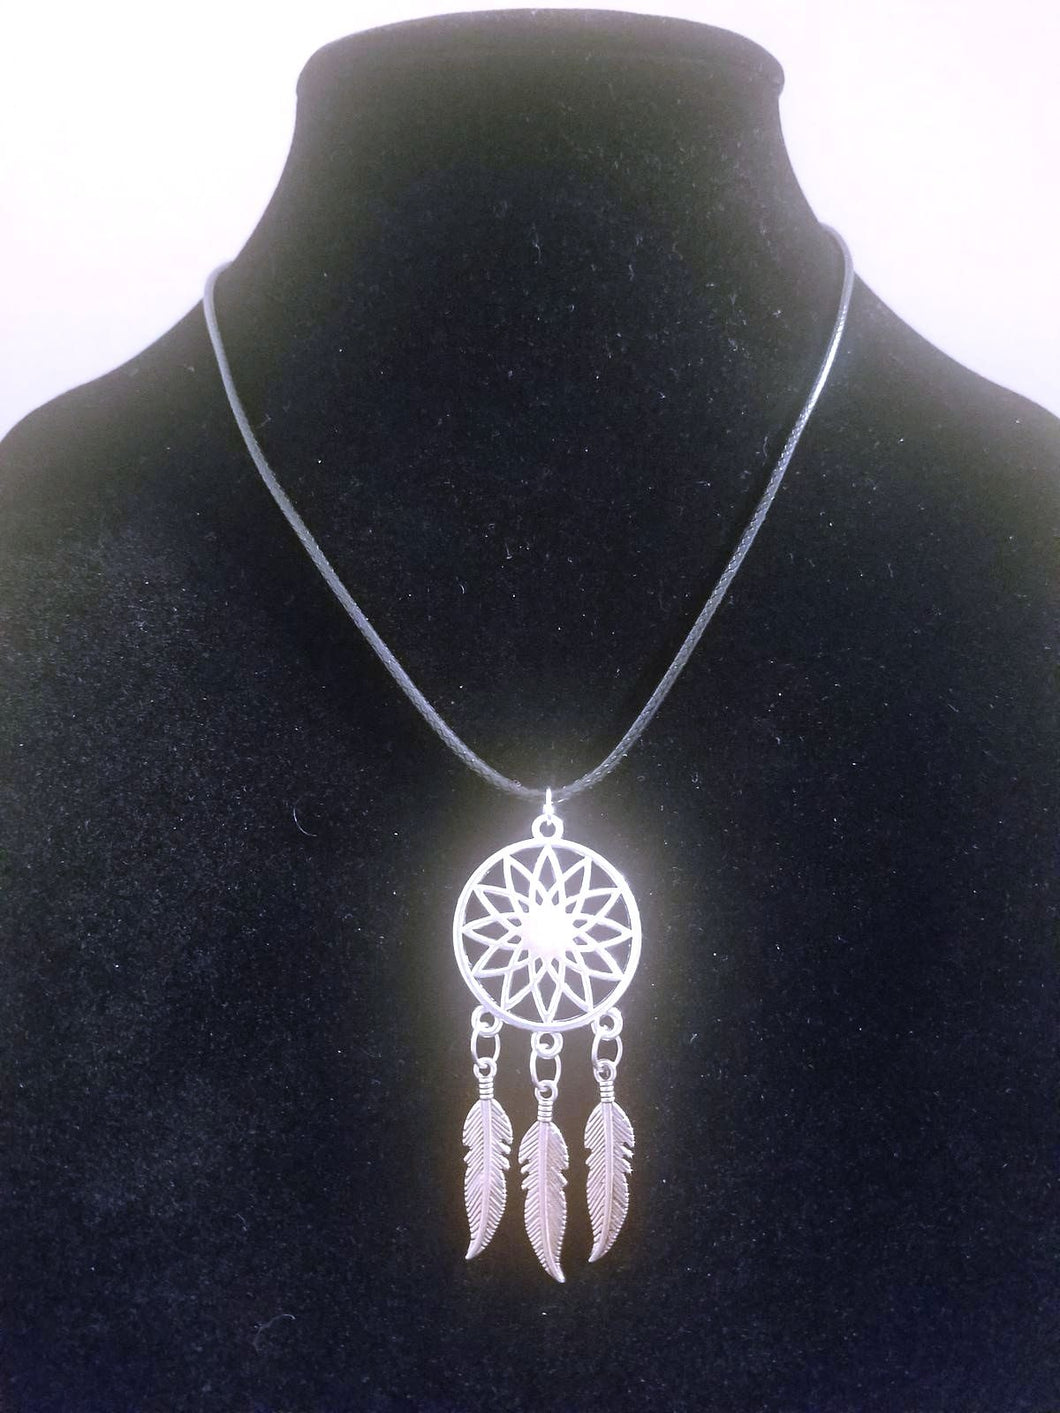 Dream Catcher Necklace Braided Leather - Native American Pendant